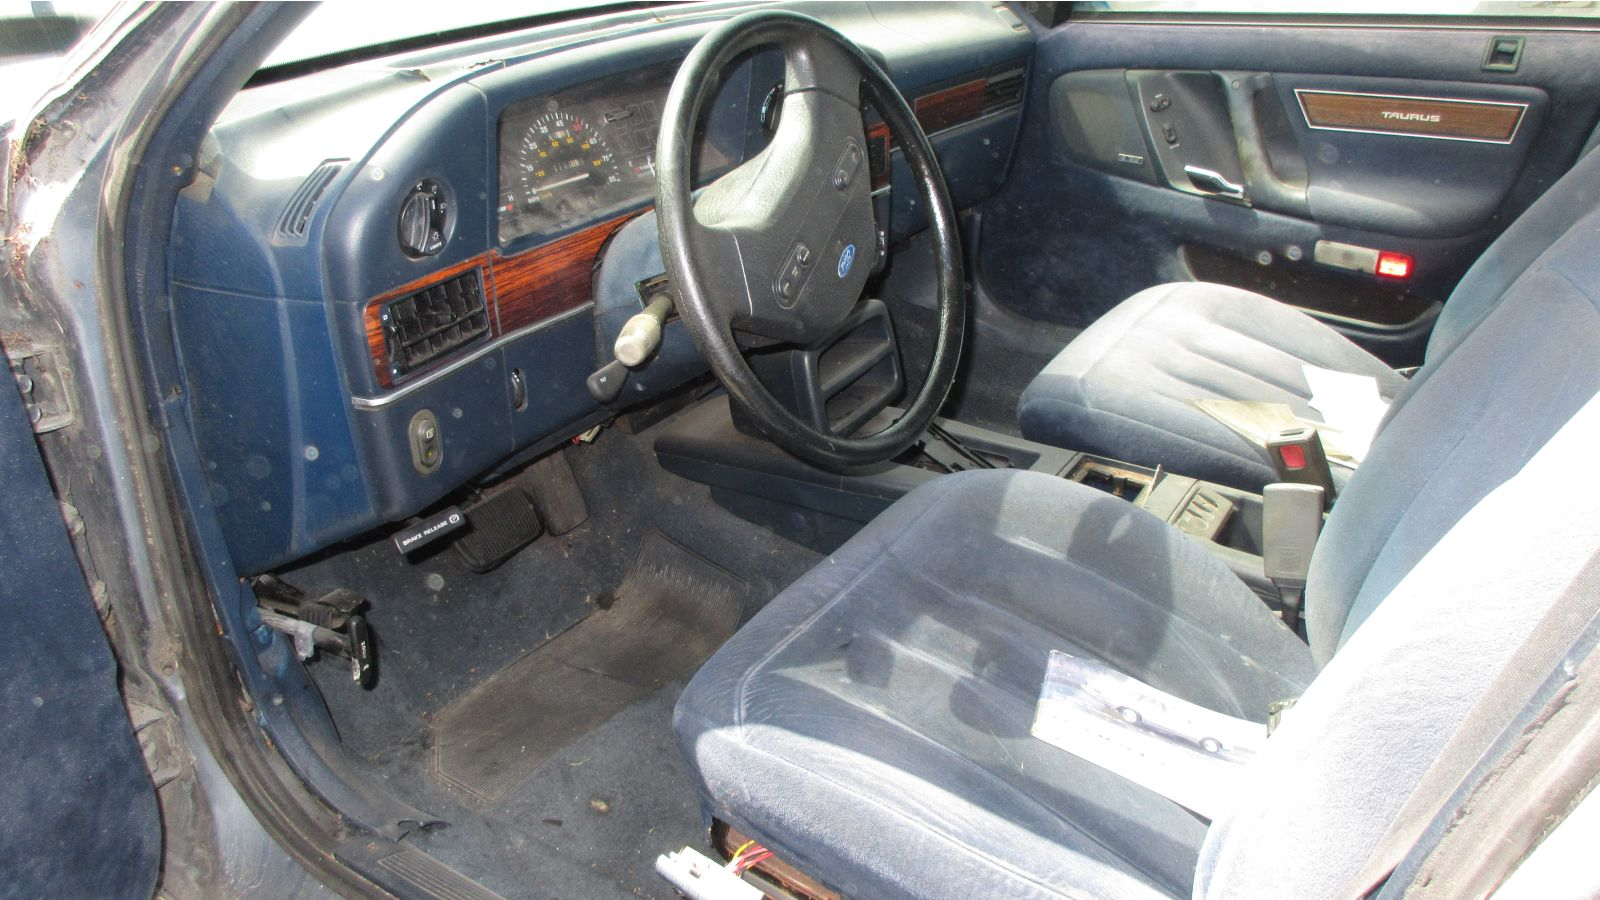 The blue velour upholstery looks good, indicating that the car was well  cared for during its time on the road.